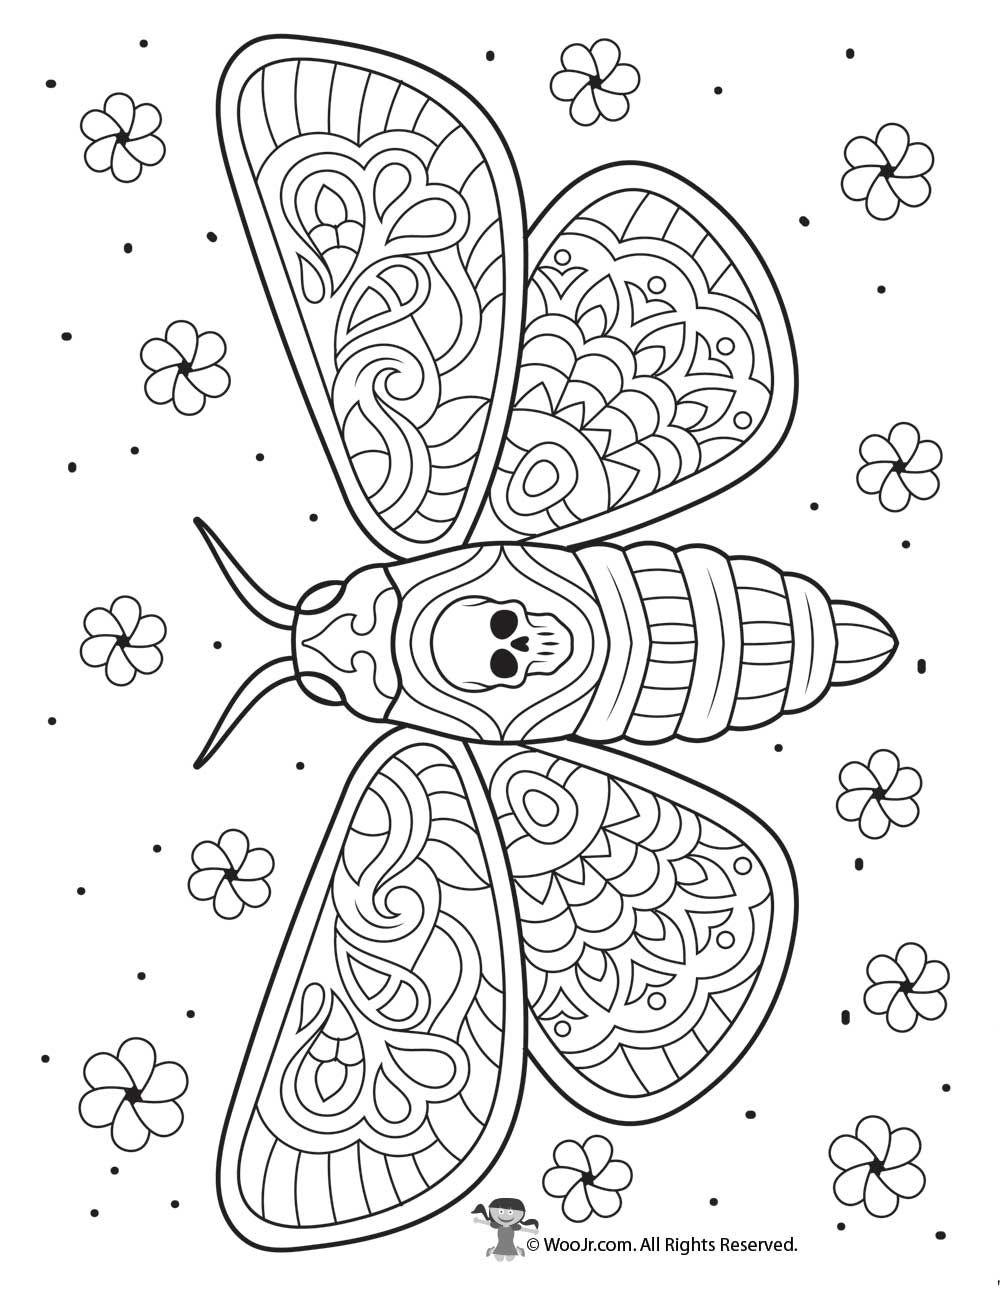 Day Of The Dead Moth Intricate Coloring Page Woo Jr Kids Activities Skull Coloring Pages Abstract Coloring Pages Coloring Pages